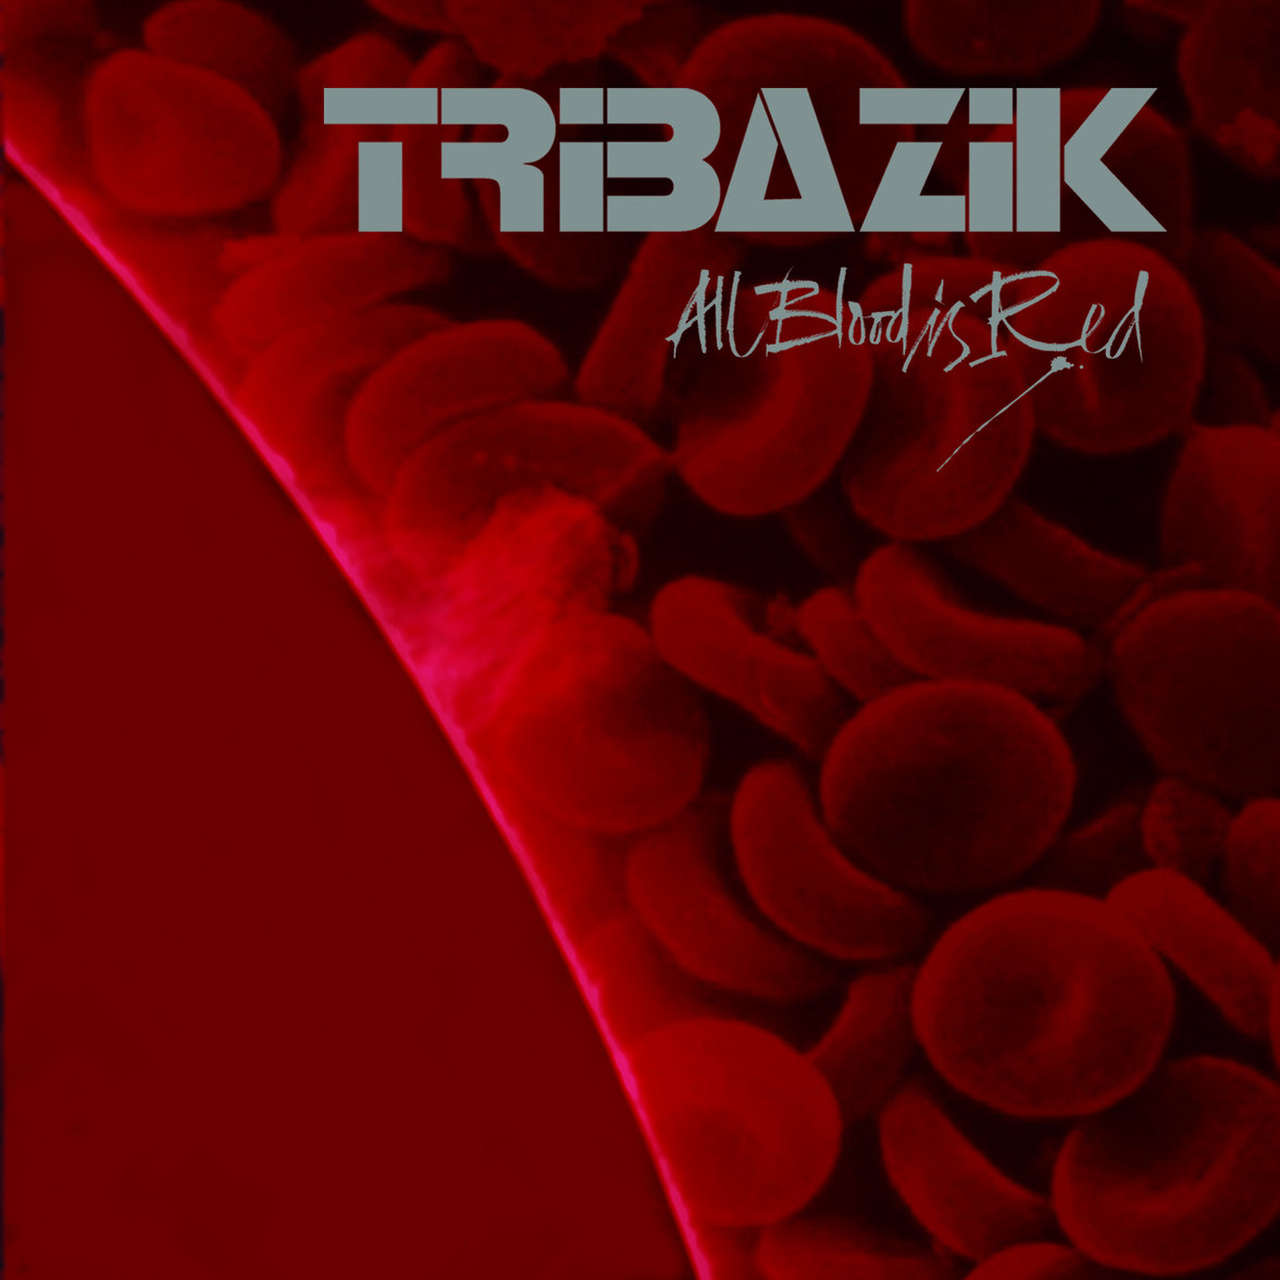 Tribazik - All Blood is Red (CD)